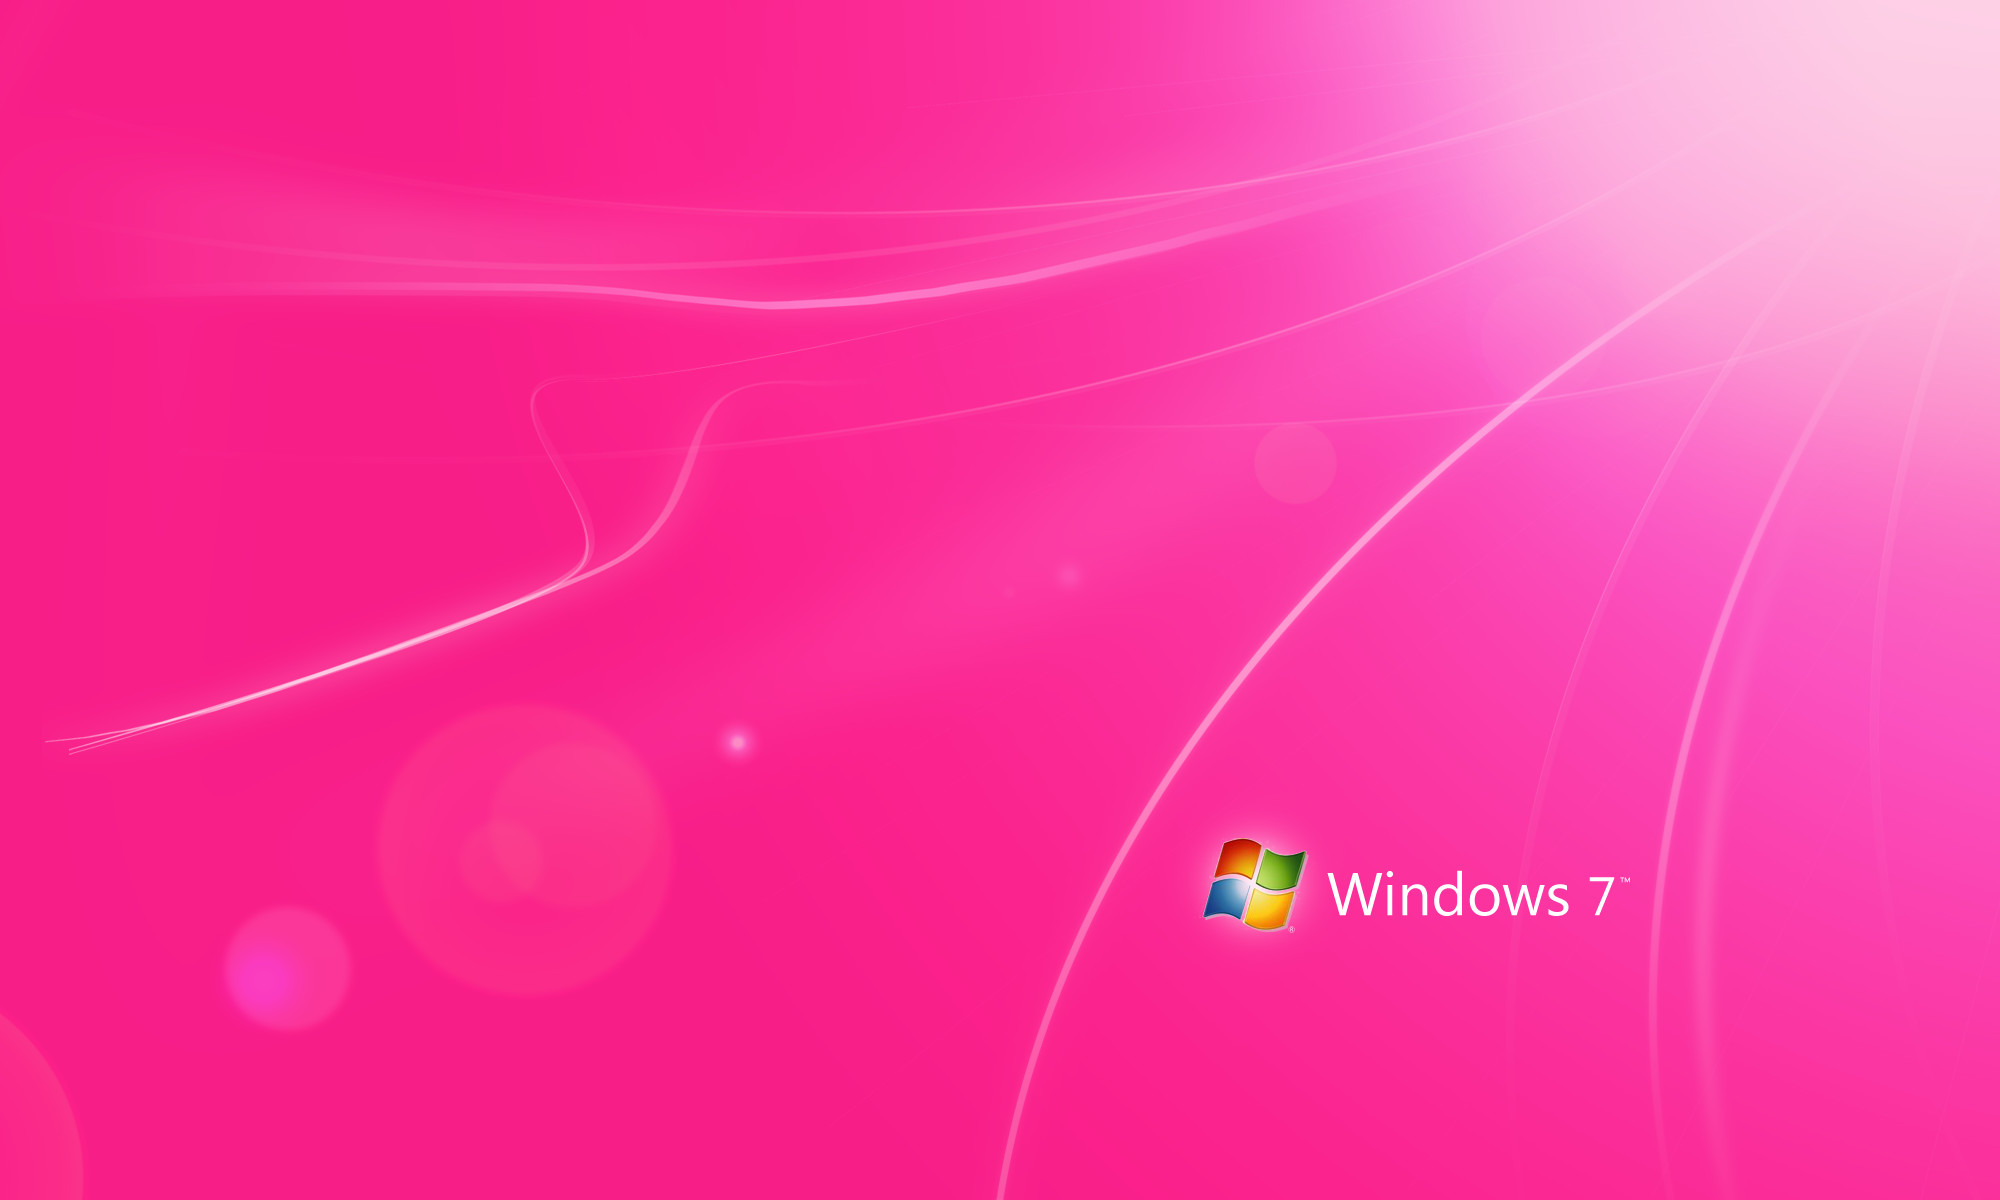 2000x1200 Pink with Logo – 7 Light Flow